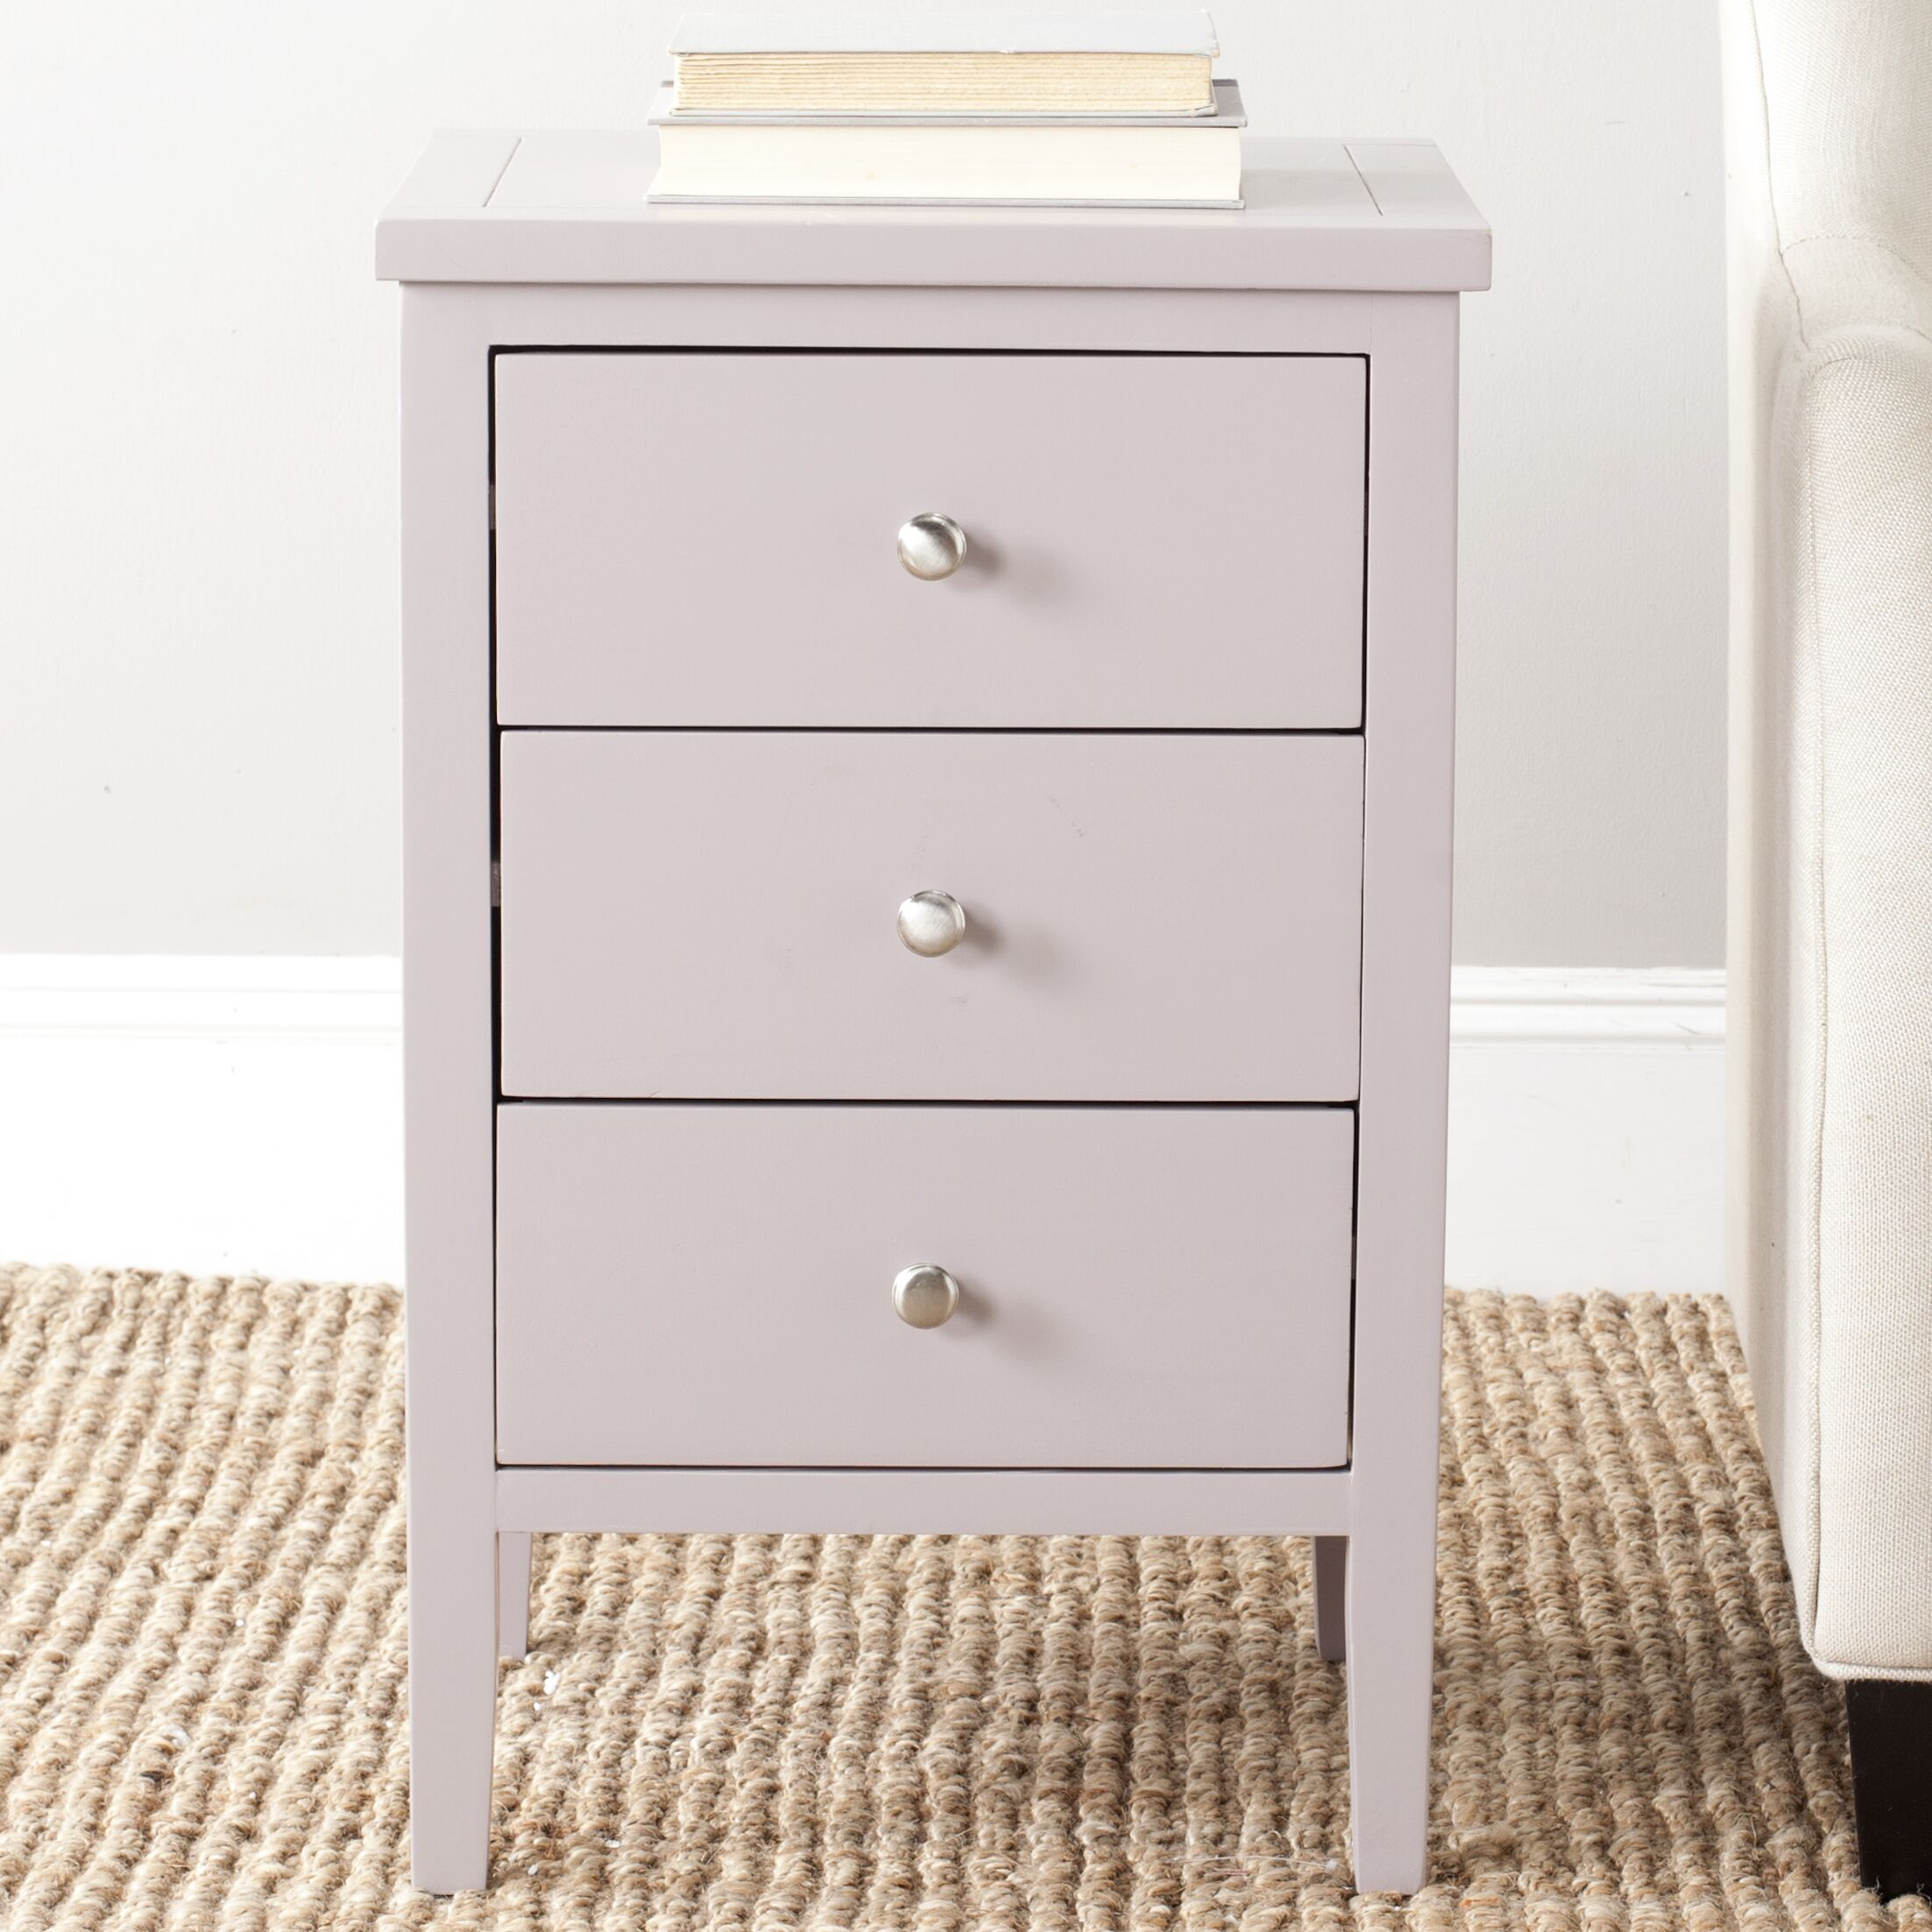 Tussilage End Table With Storage Color: Quartz Gray